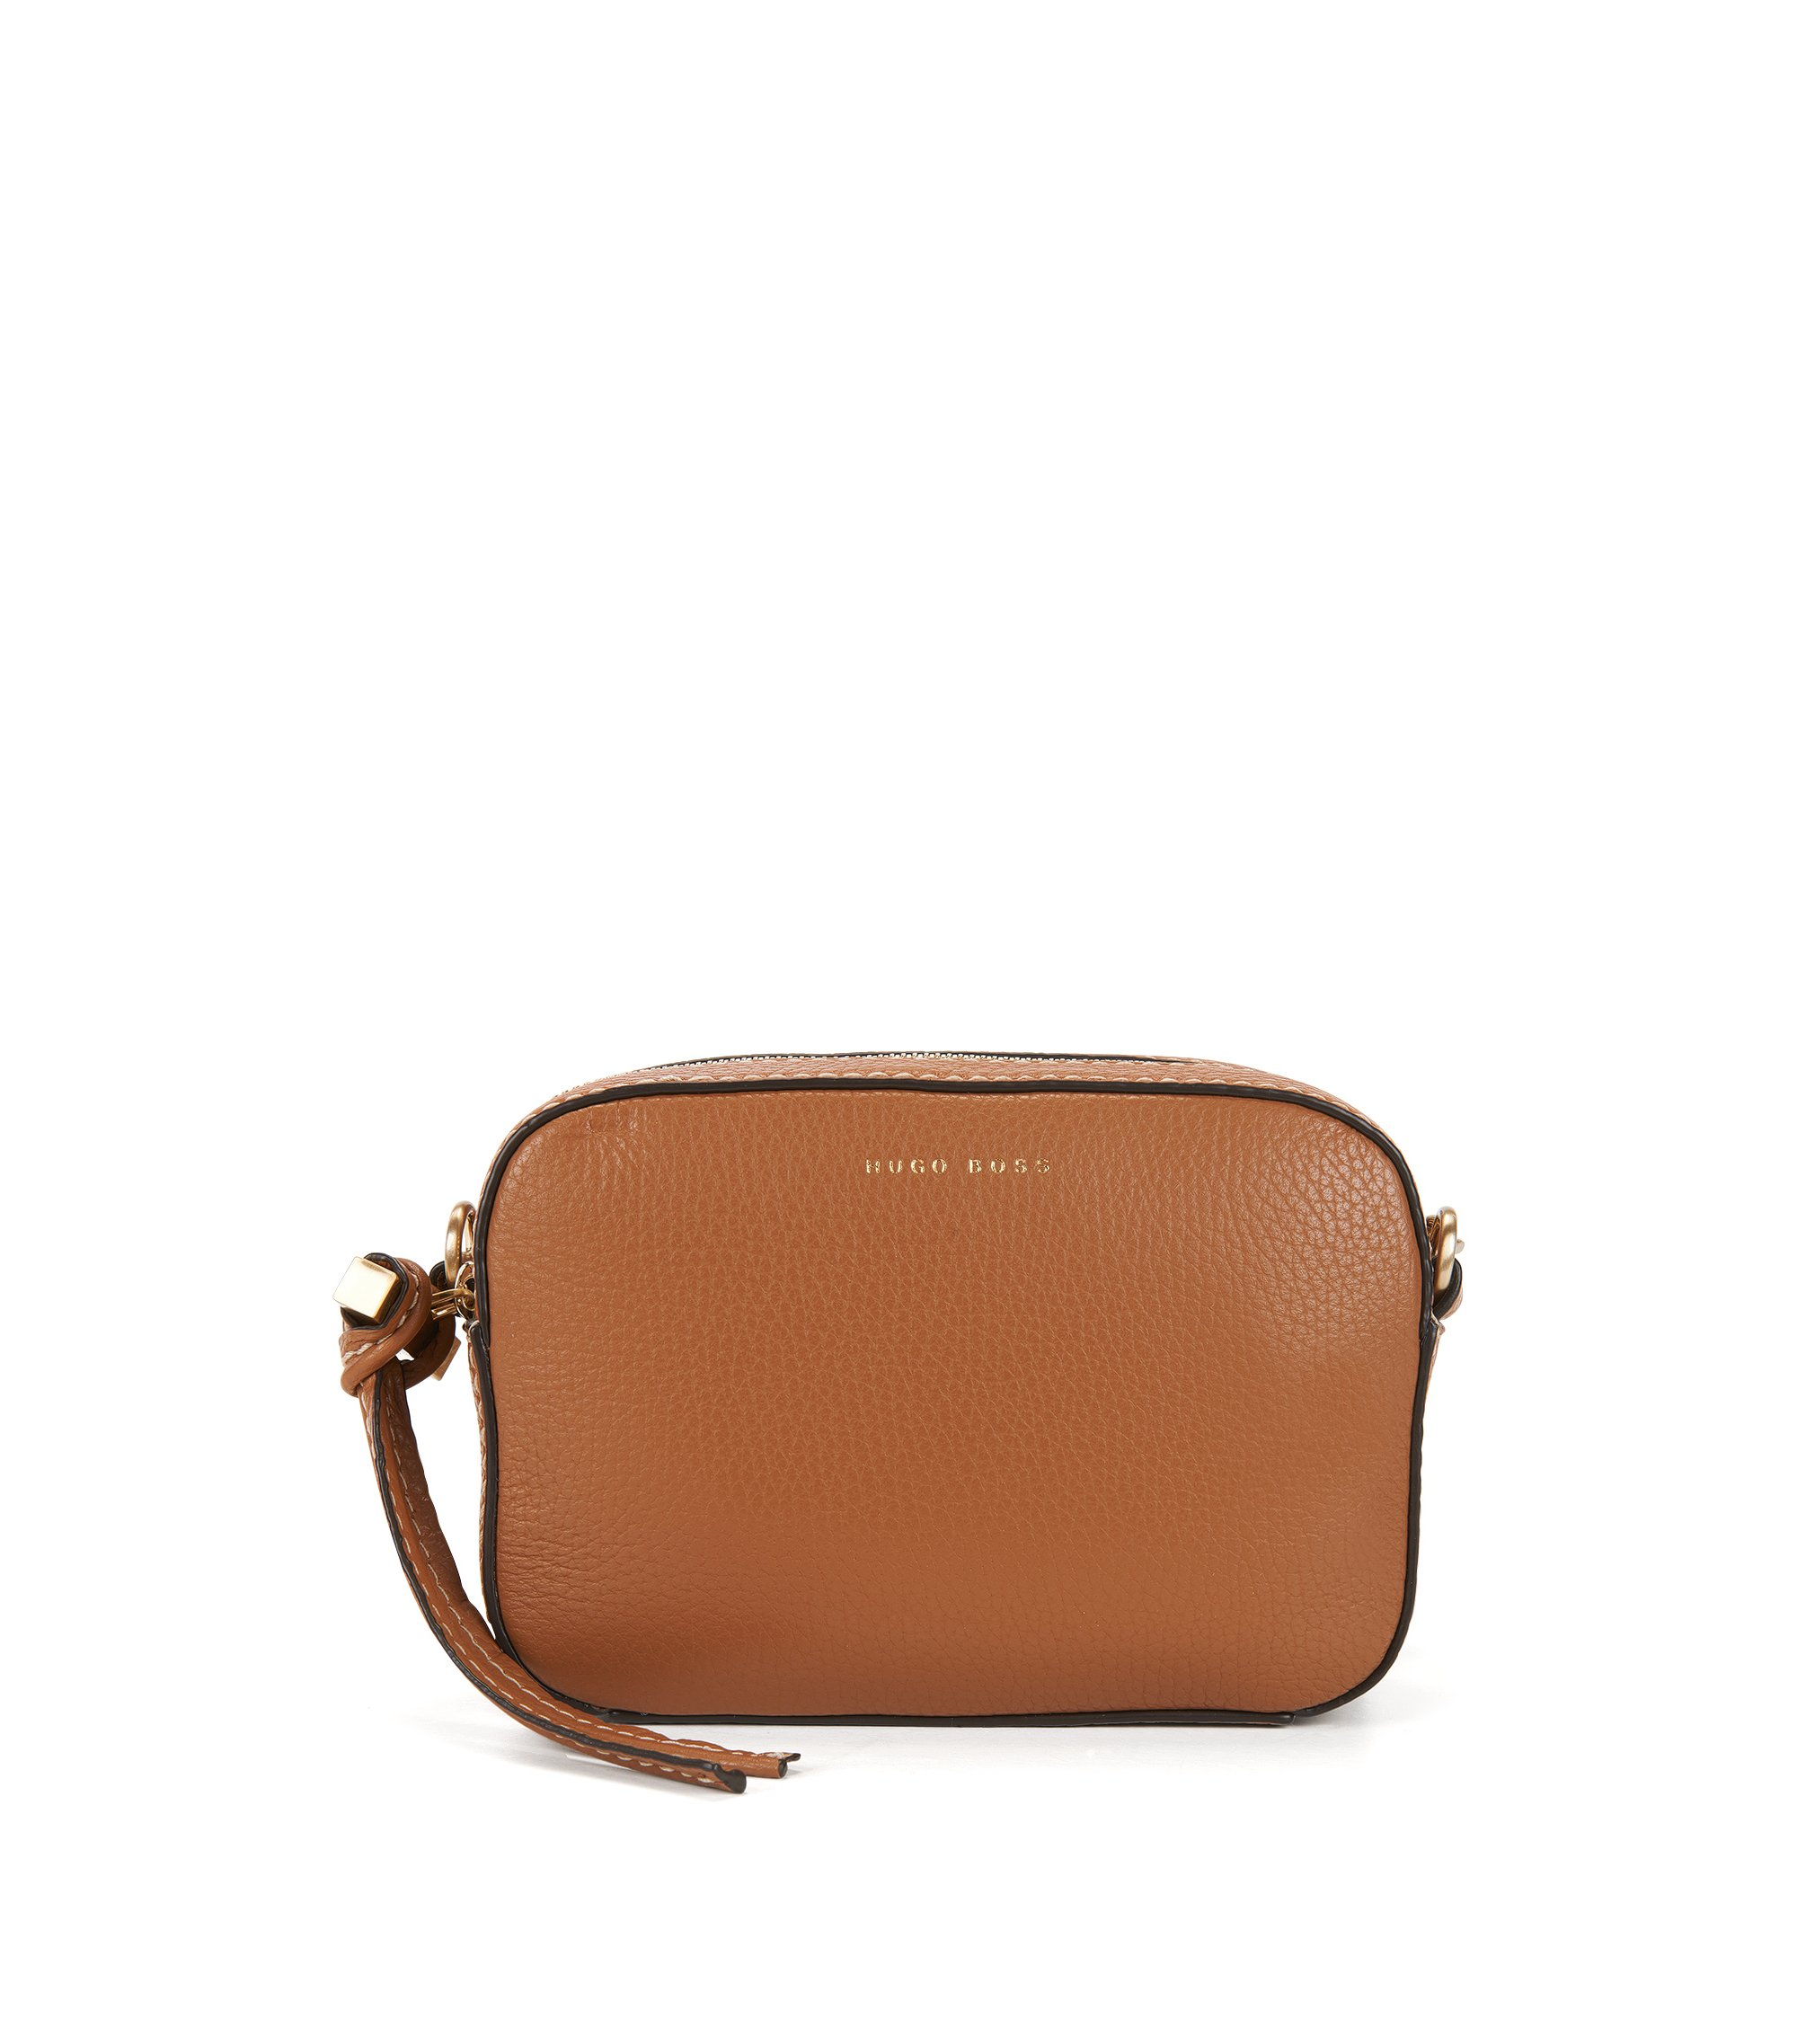 BOSS Bespoke Soft shoulder bag in grained Italian leather, Brown